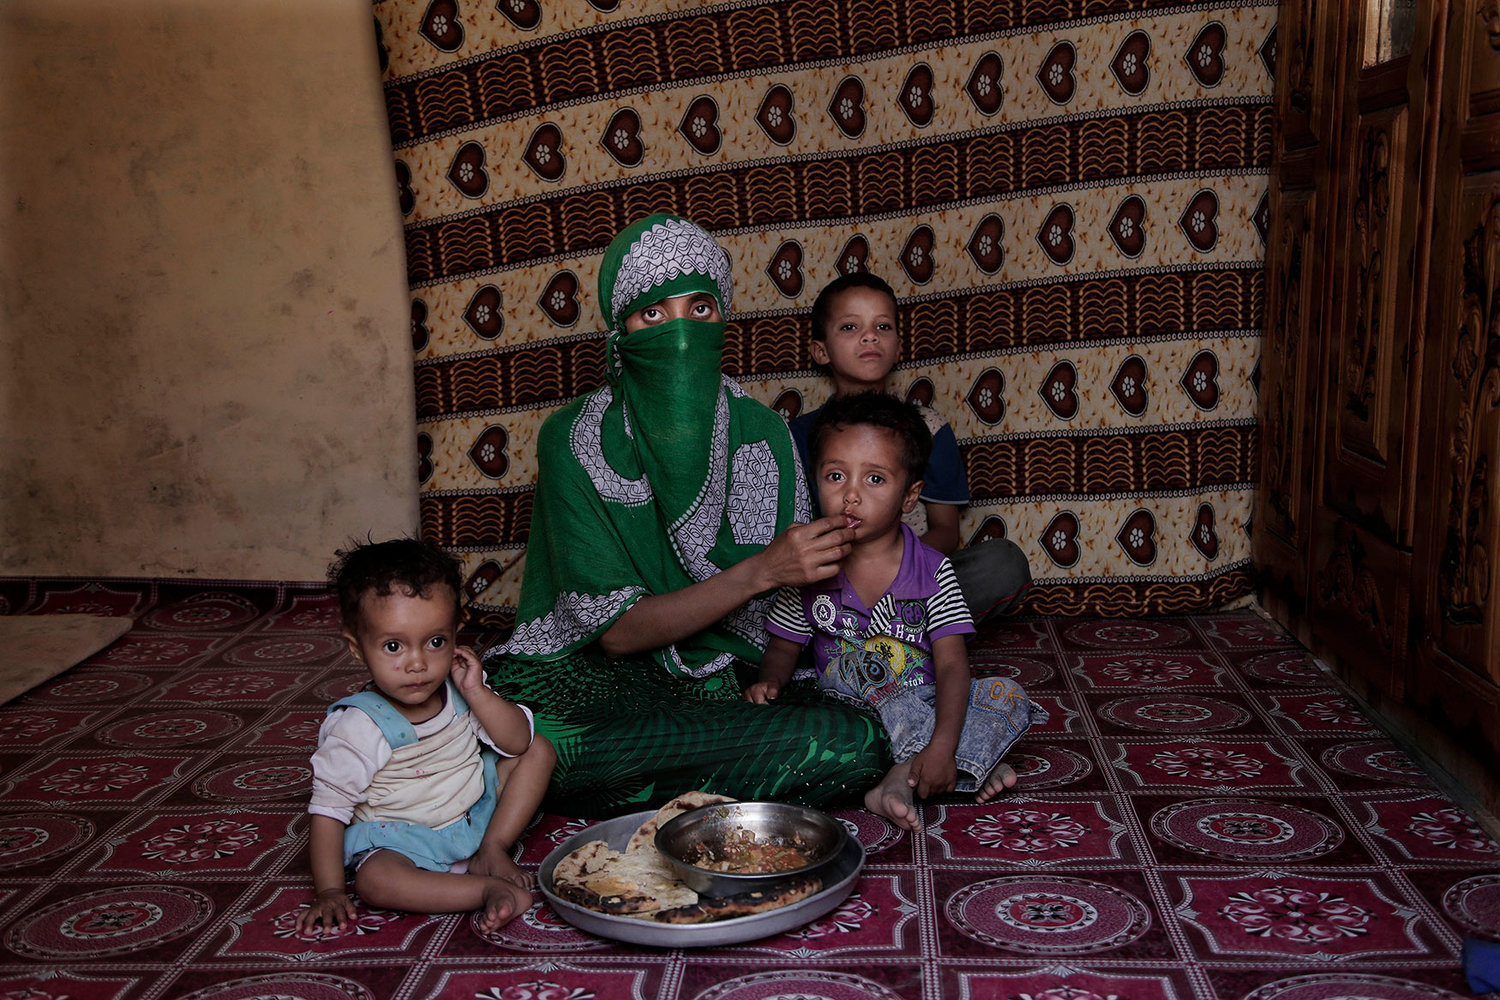 Sherine is shown with her children, Al-Mallah, Yemen. (AP Photo/Nariman El-Mofty)